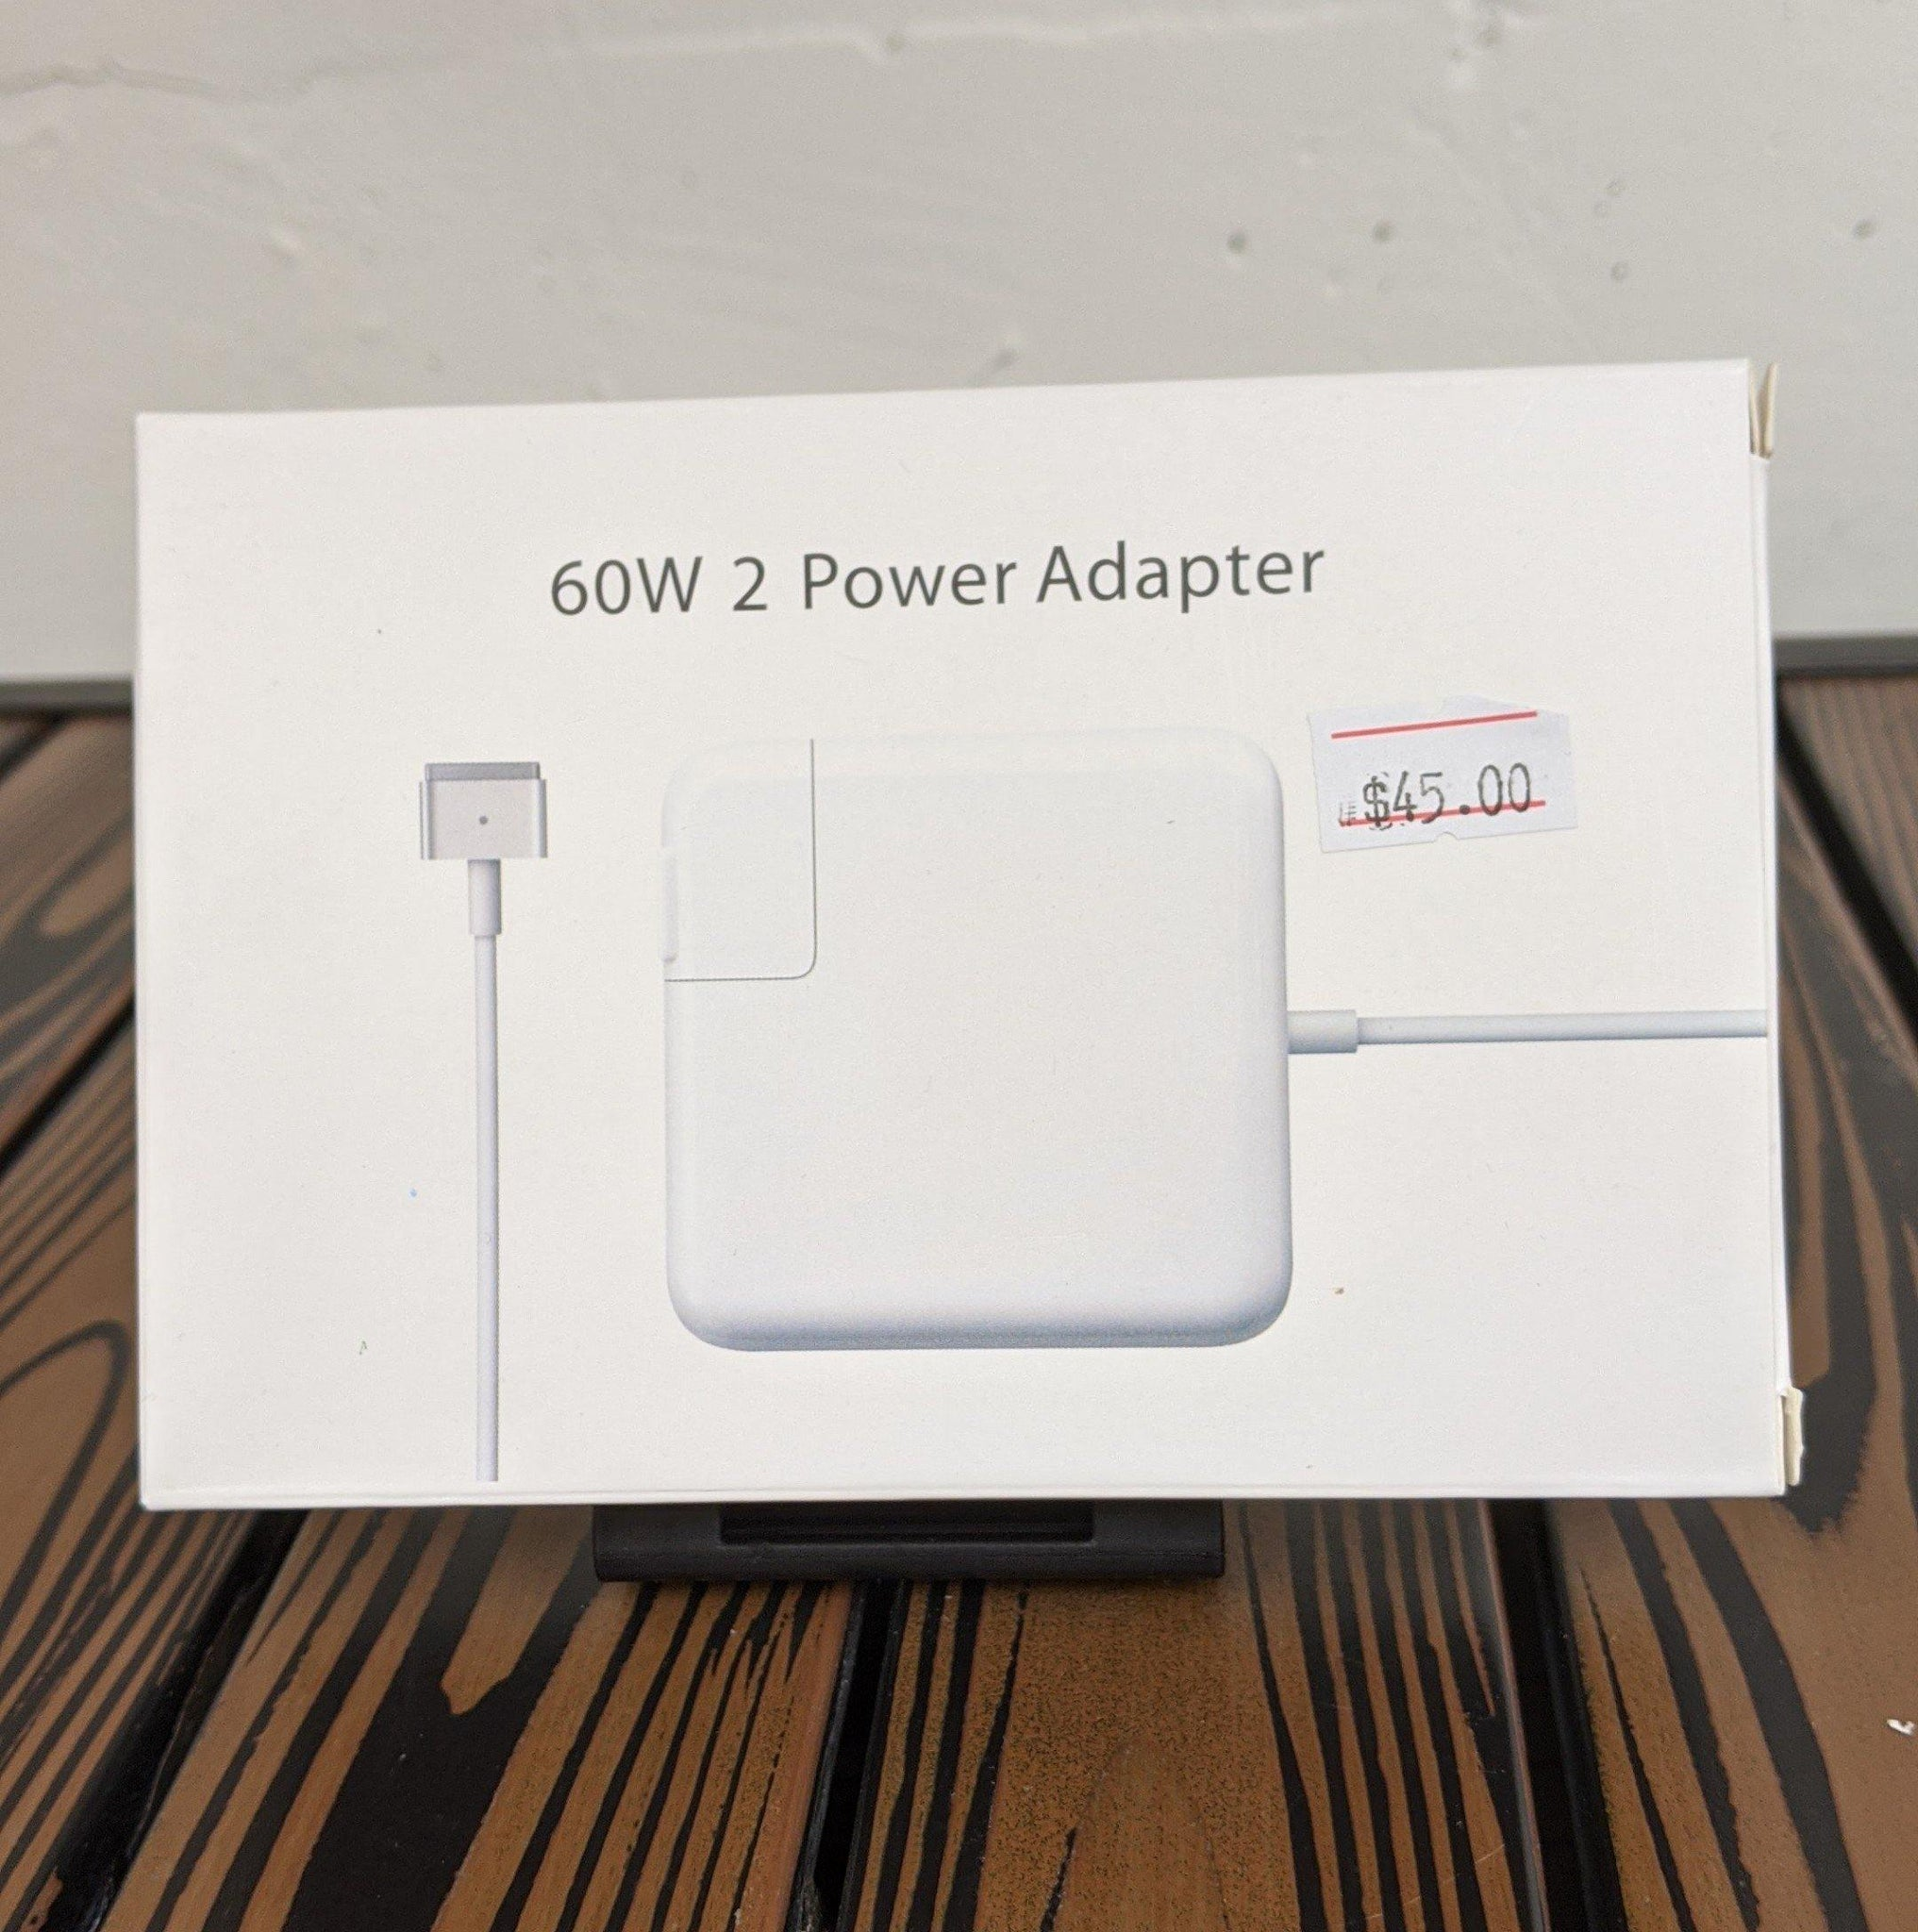 MagSafe 2 Power Charger Adapter for Apple MacBook - 60W